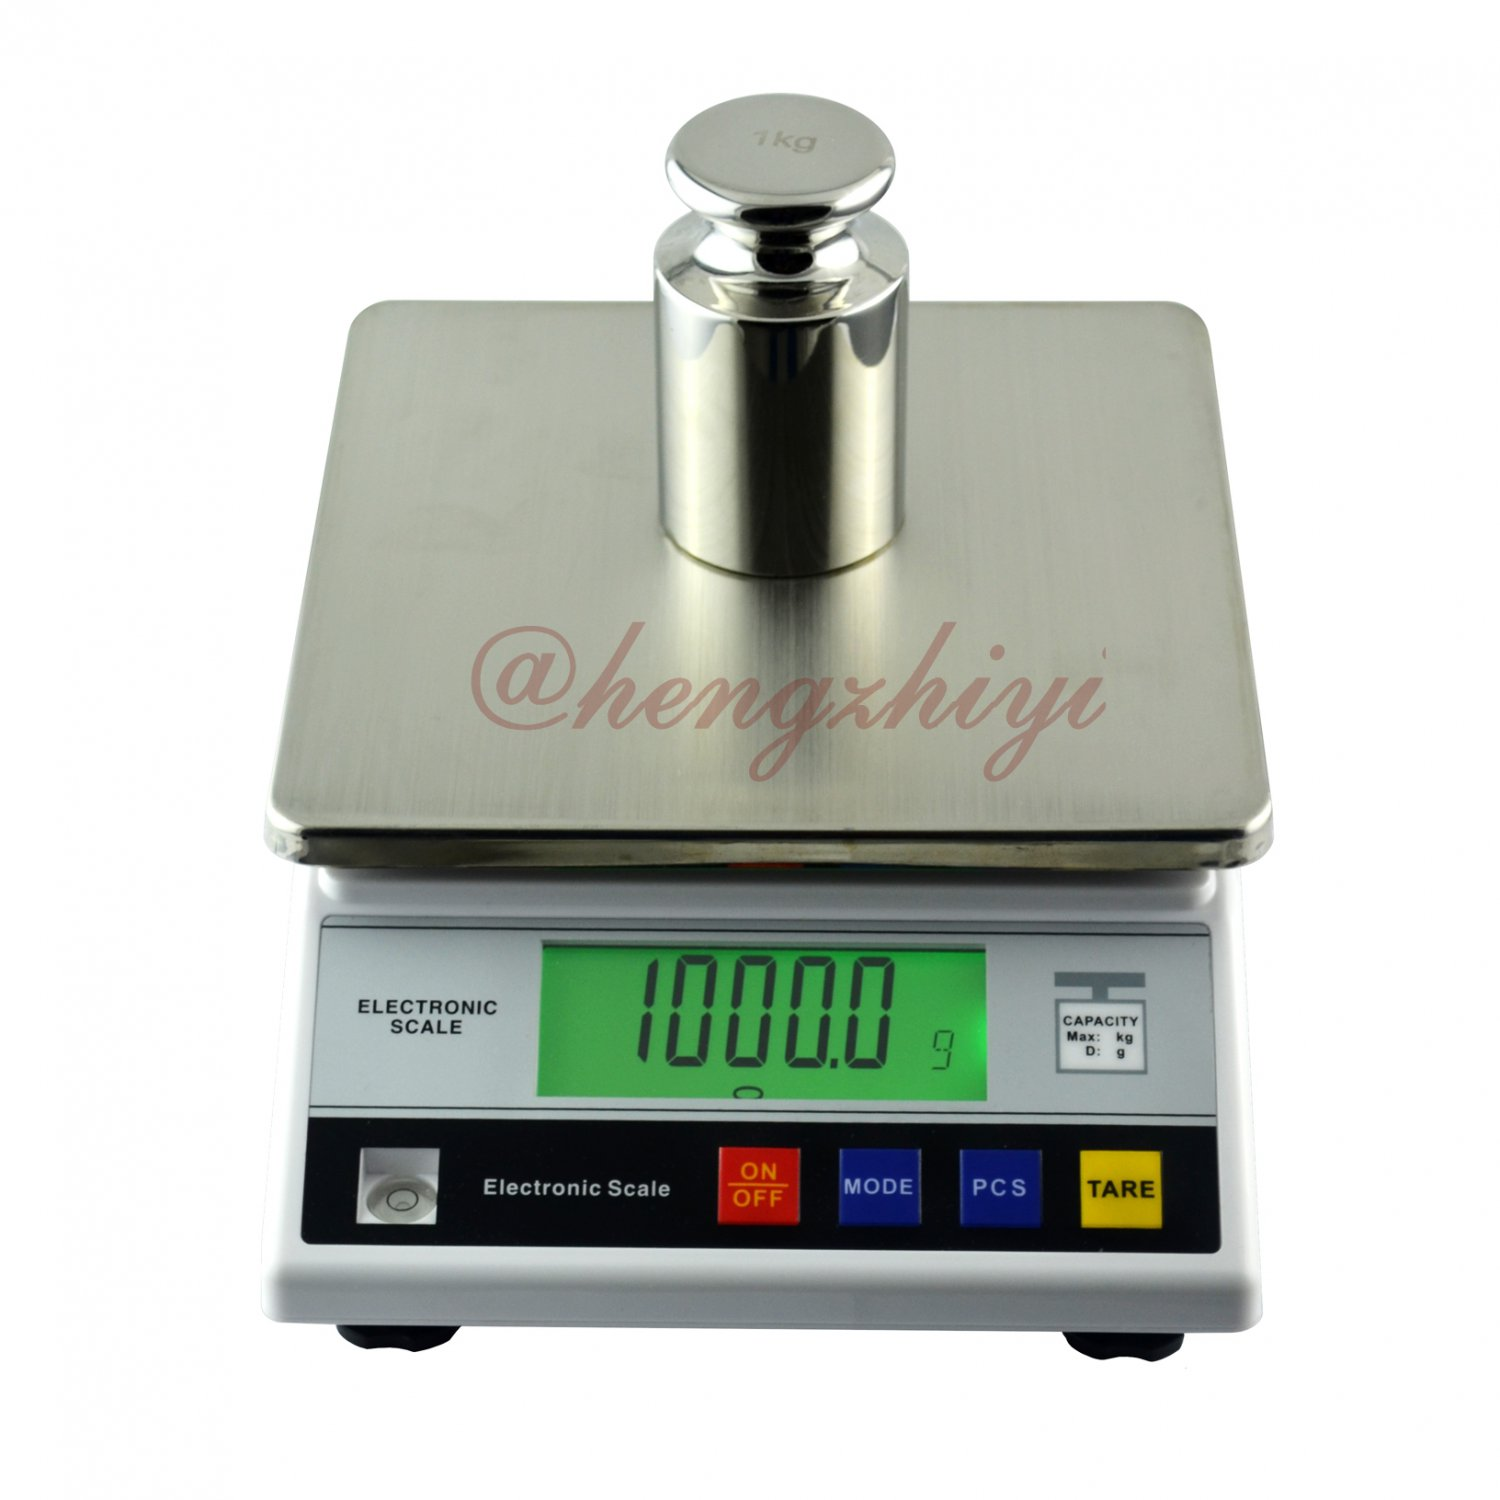 3kg x 0.1g Digital Accurate Precision Kitchen Baking Scale Balance w Counting, Free Shipping